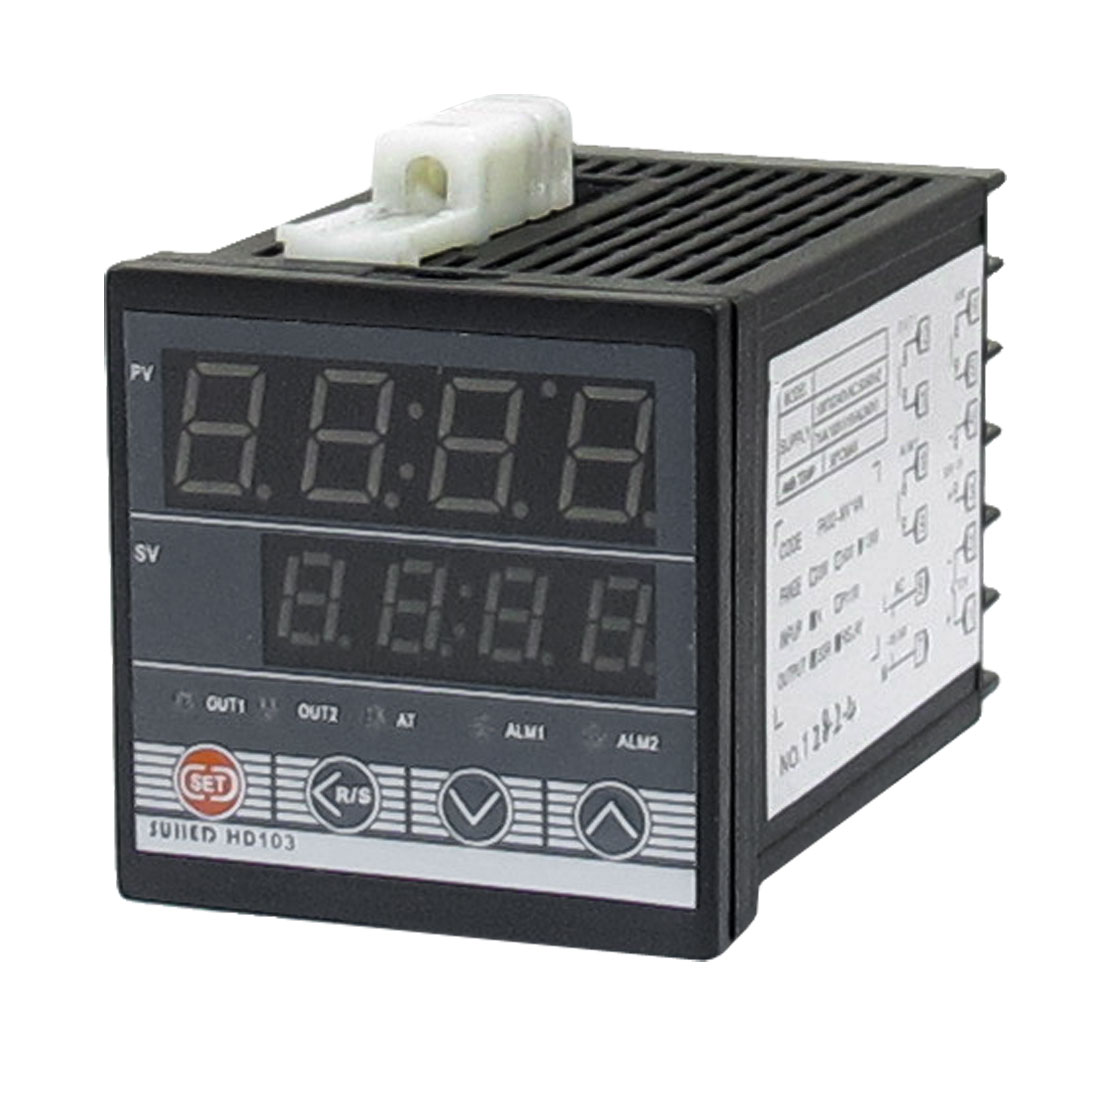 Type Thermocouple Pv Sv Display Digital Pid Temperature Controller #6D715A